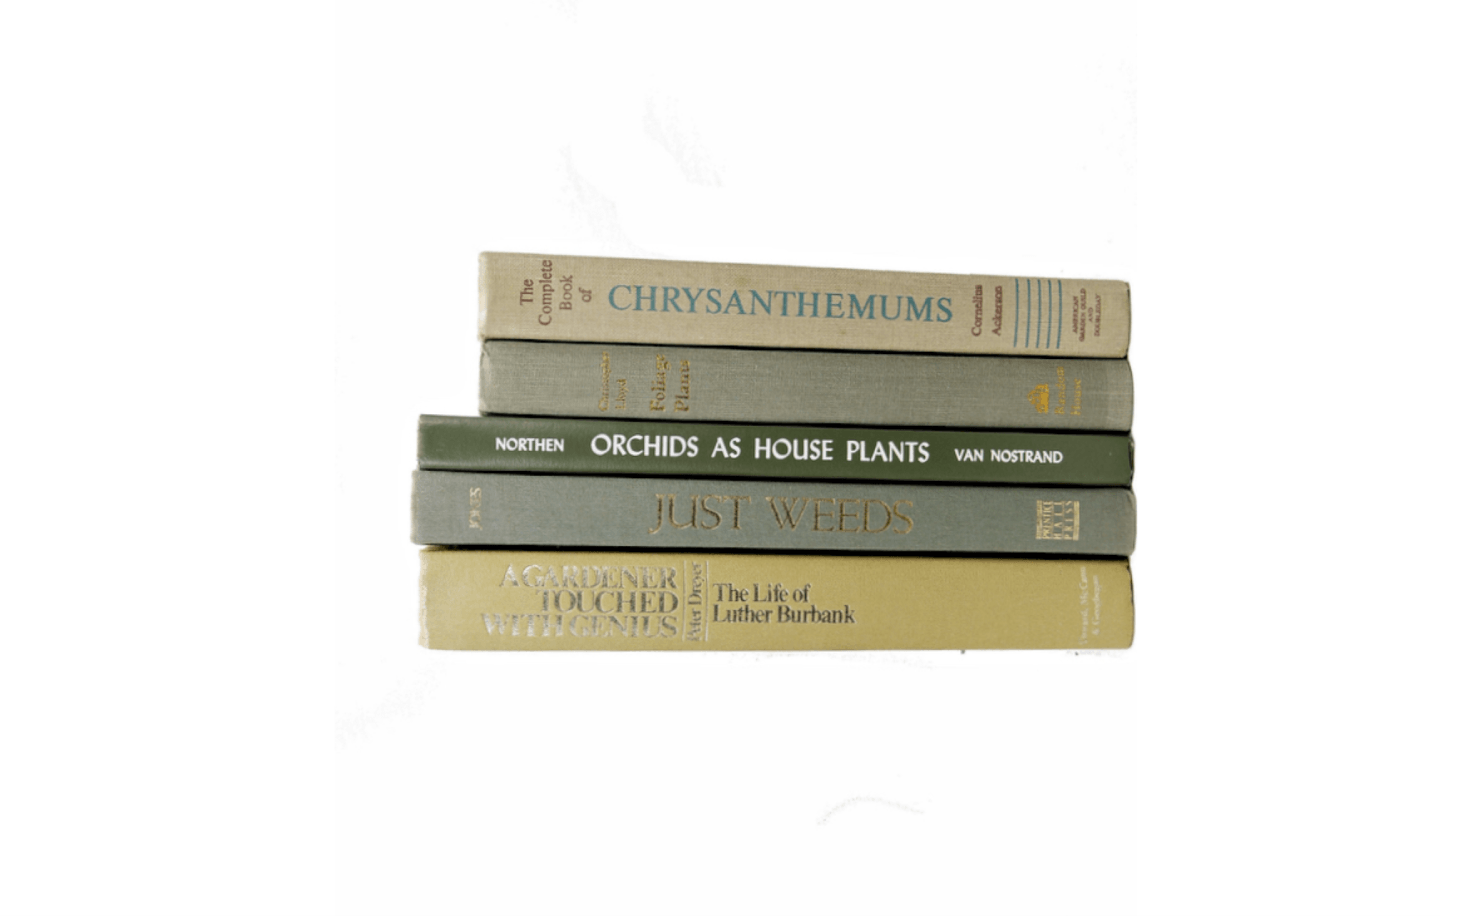 A collection of five vintage Plant & Garden Books bundled together by the seller because the colors of the covers complement each other includes volumes devoted to chrysanthemums, foliage plants, and orchids as houseplants. It is $36.34 from Book Styles via Etsy.